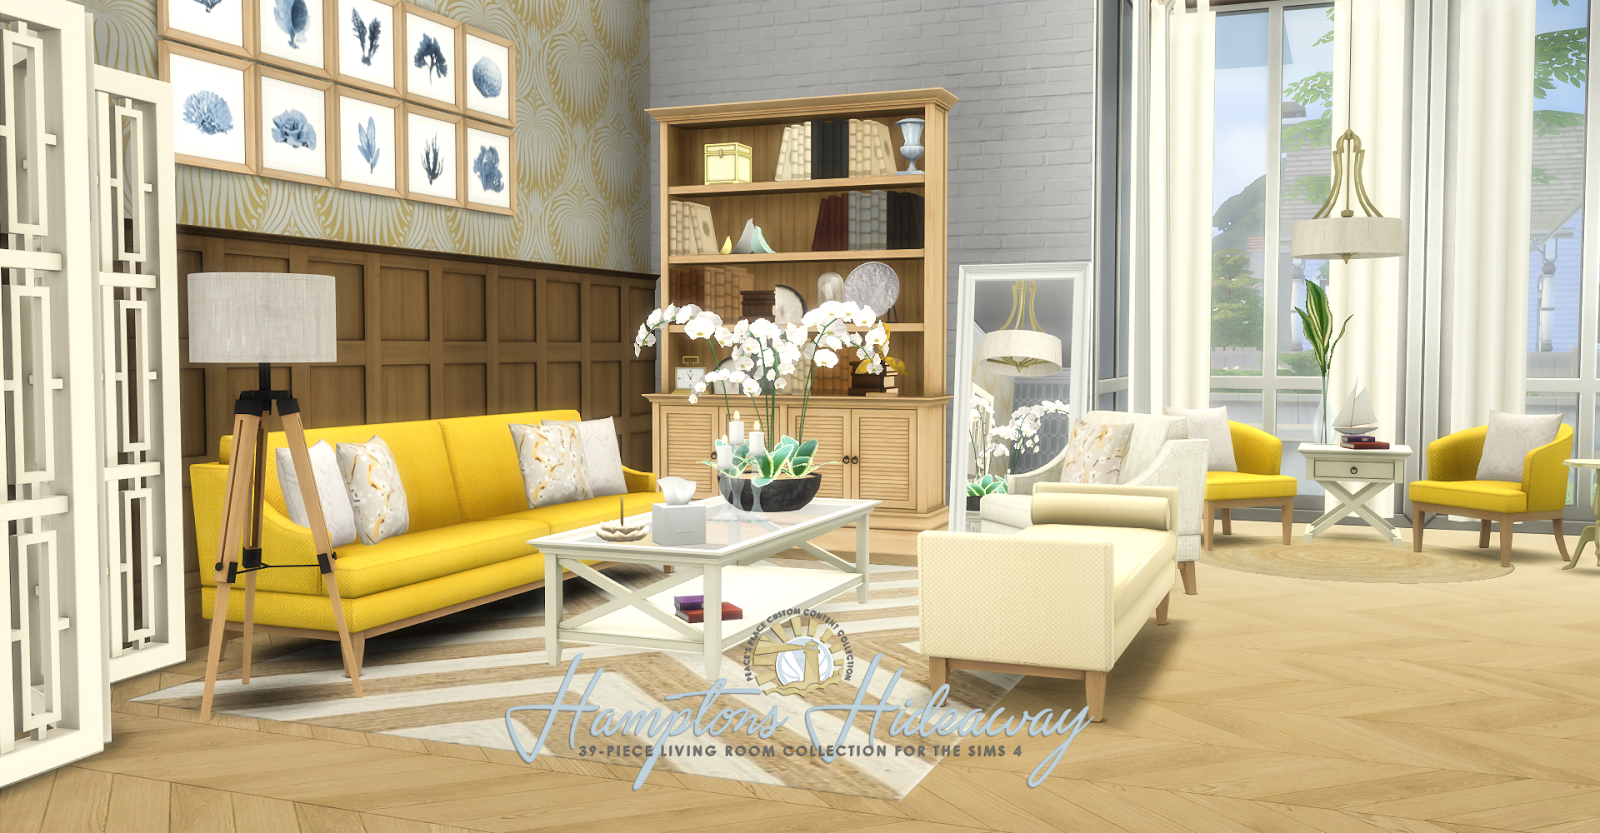 My Sims 4 Blog. My Sims 4 Blog  Updated   Hamptons Hideaway Living Room Set by